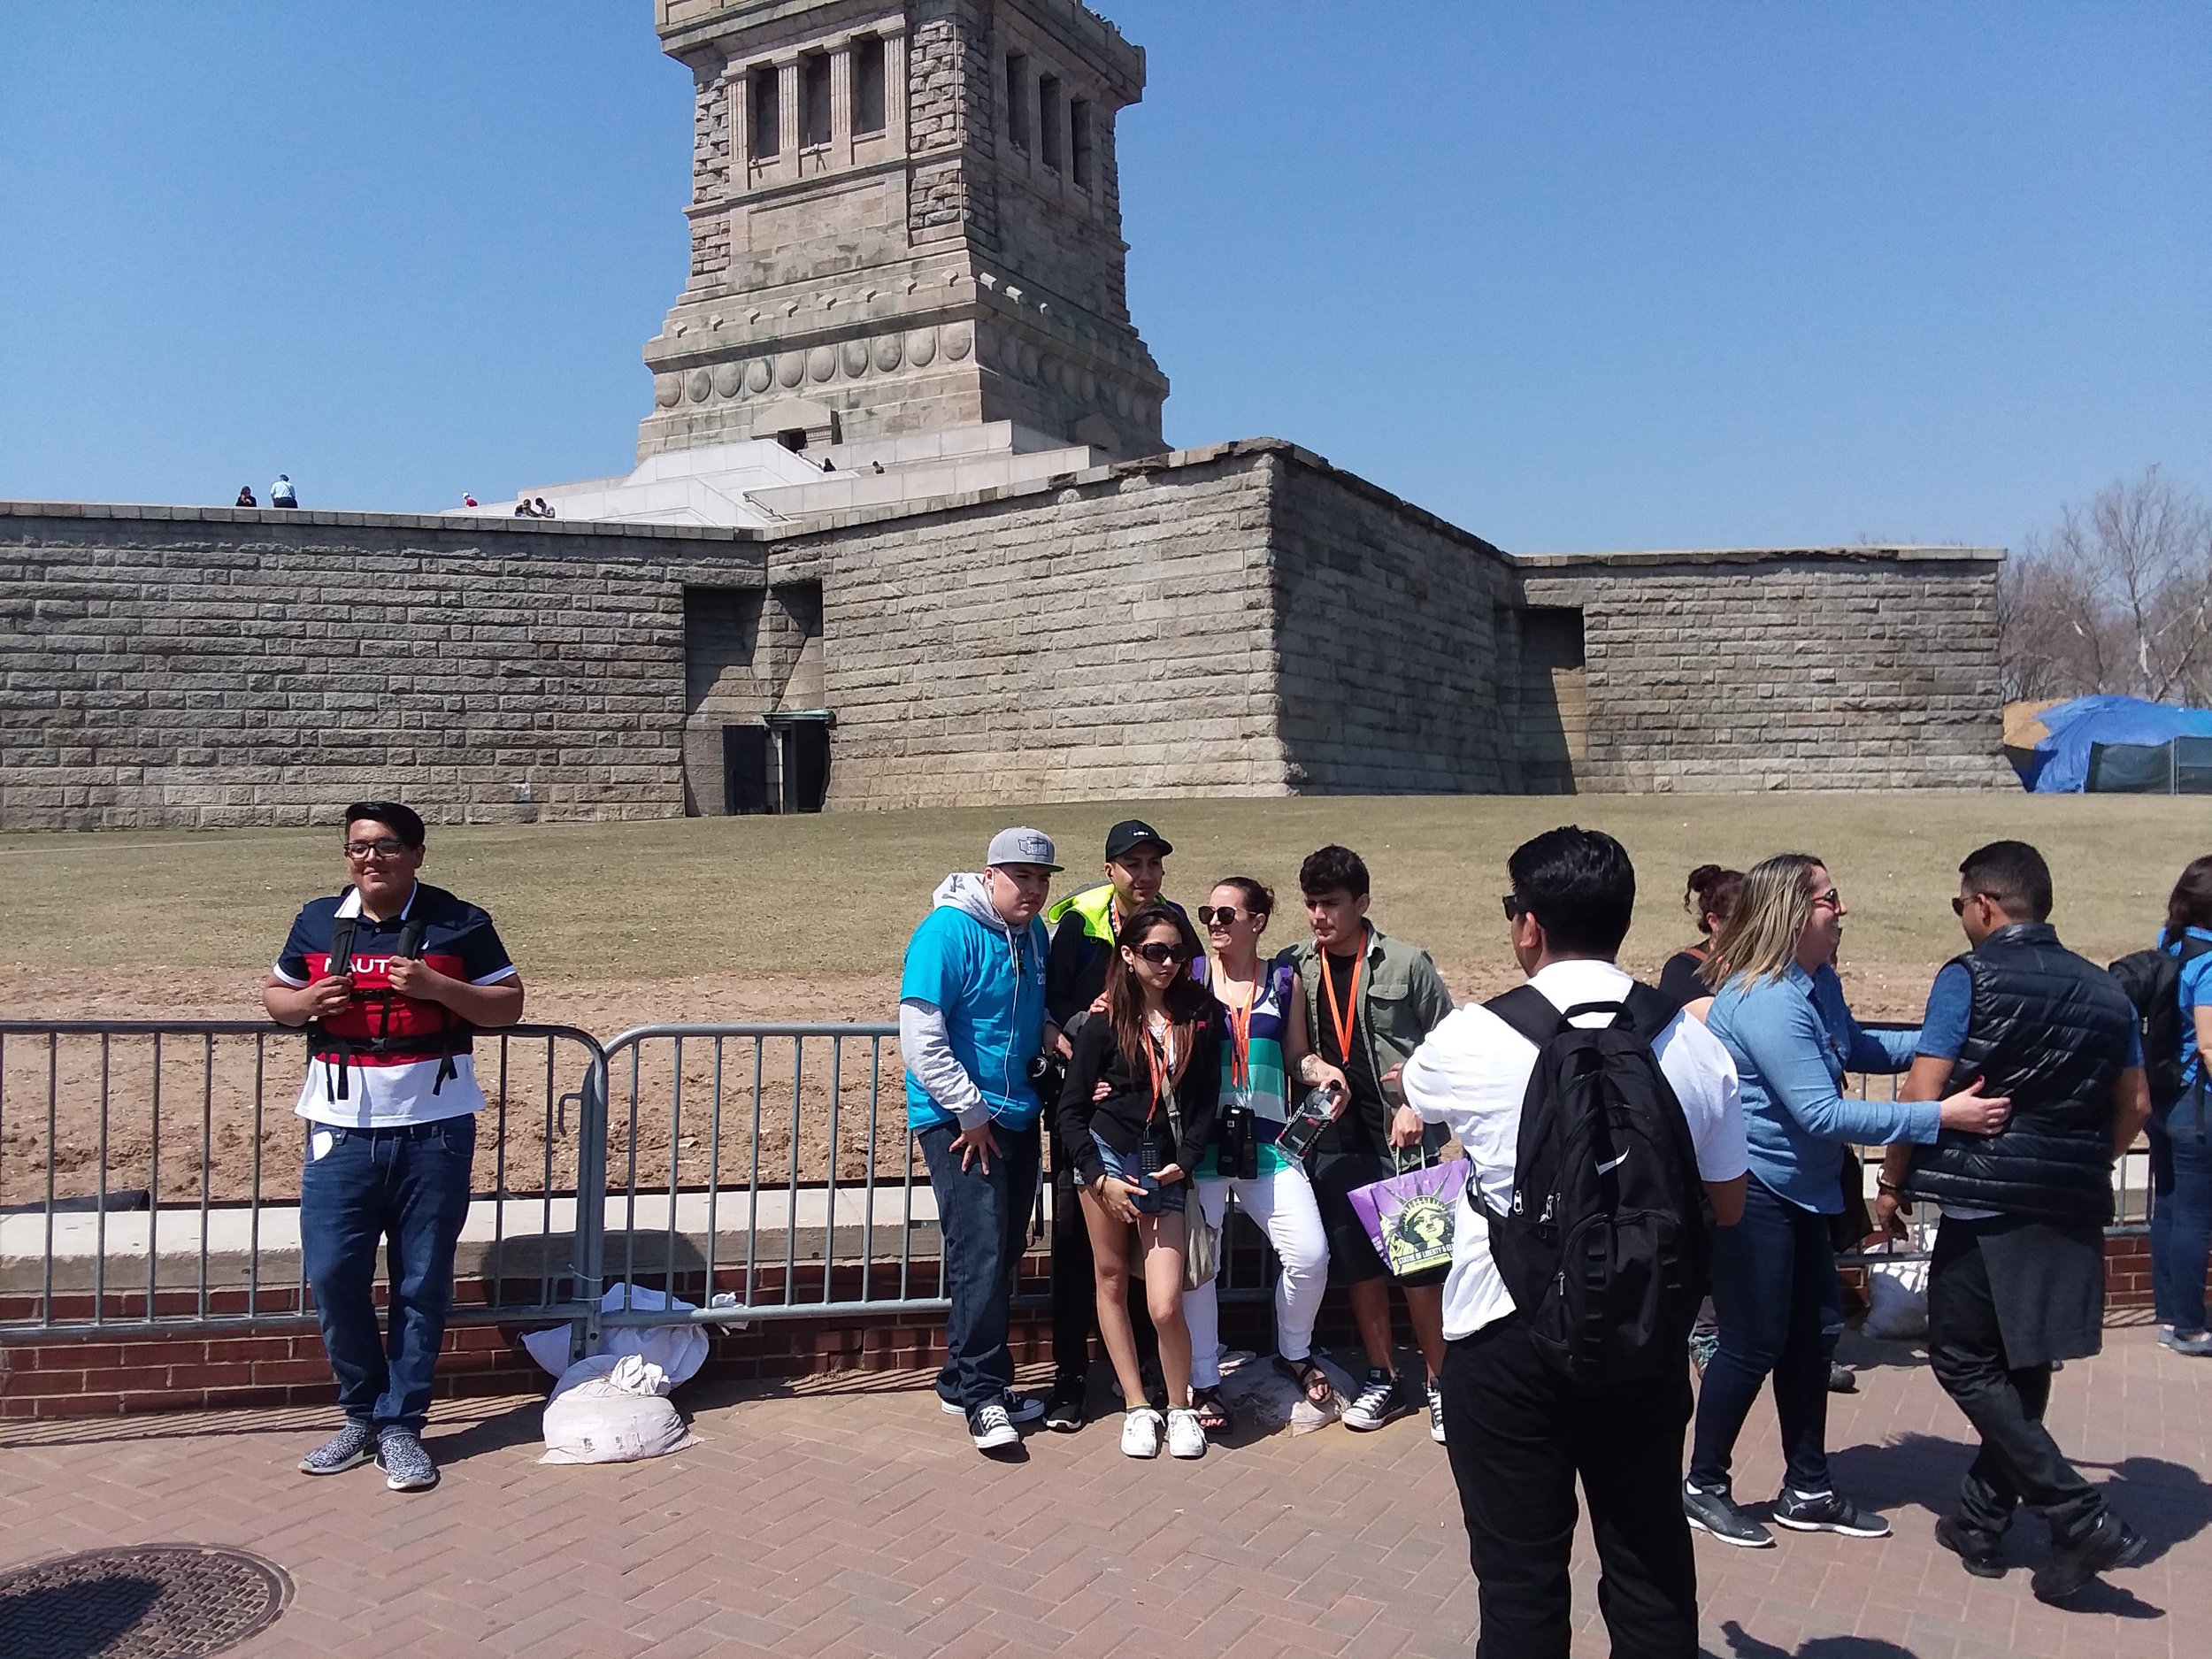 Students in front of the Statue of Liberty